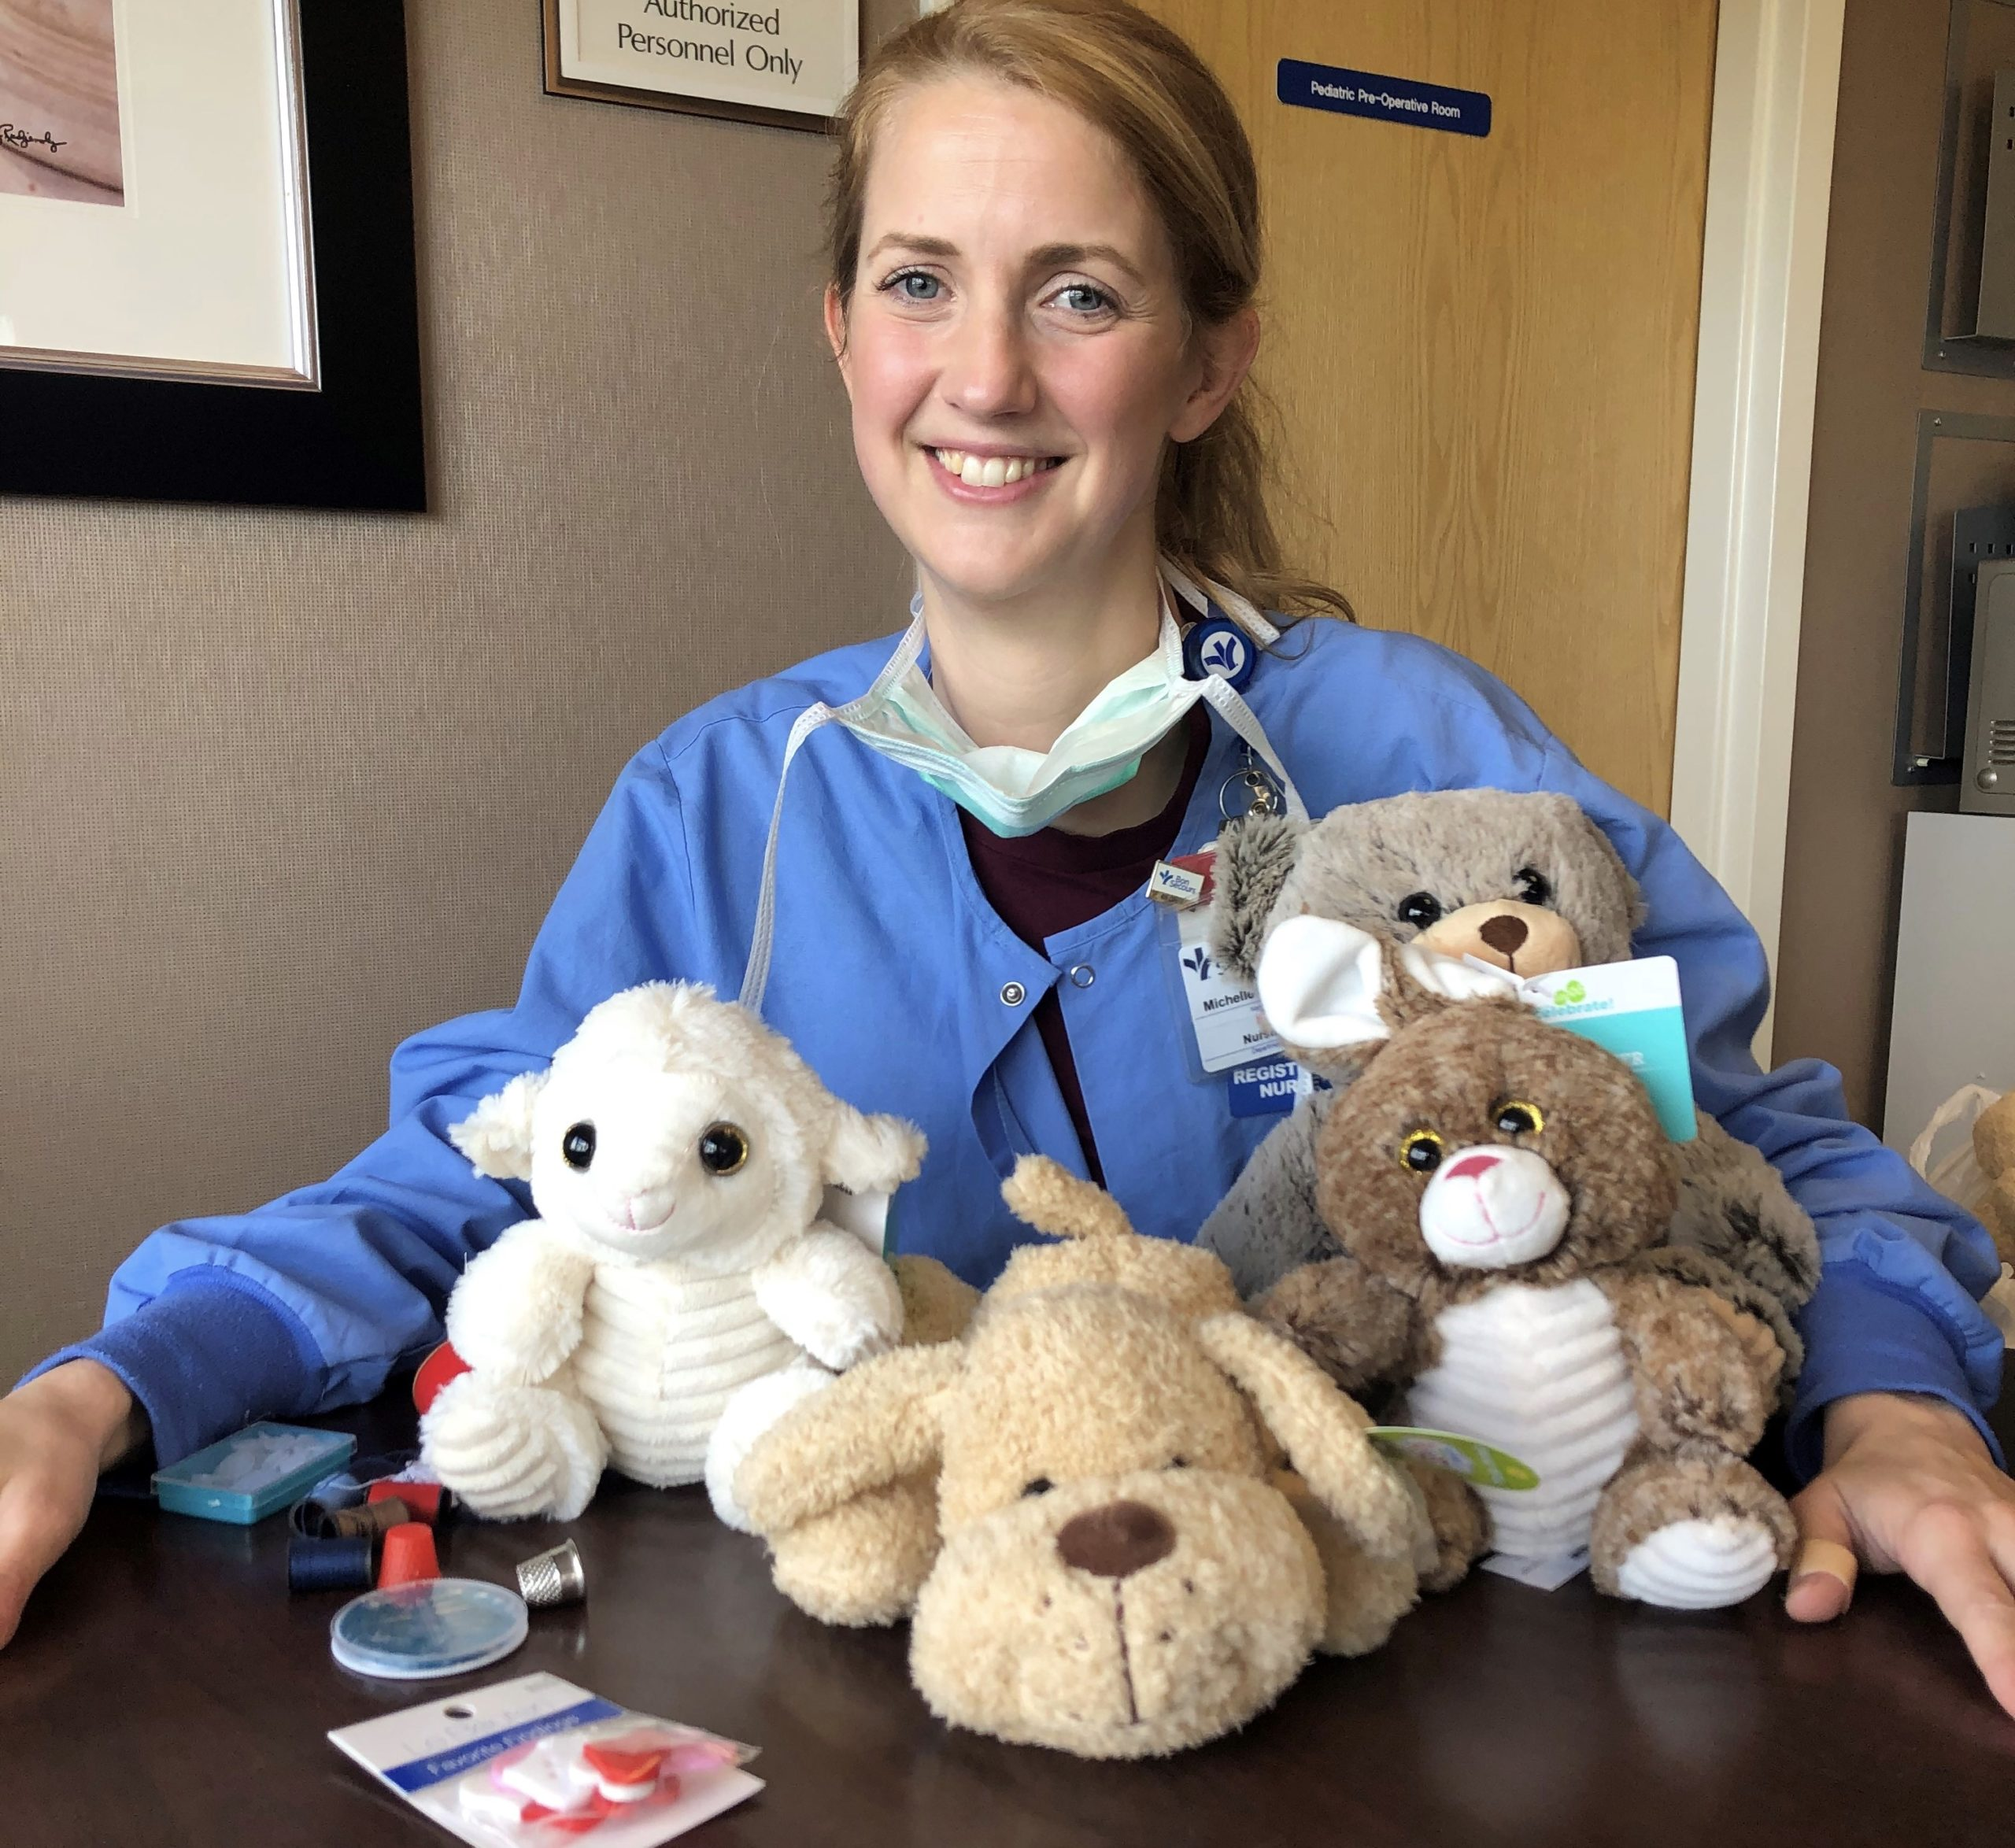 Local Nurse's Patient-Support Effort At St. Mary's Is High-Tech And Highly Adorable